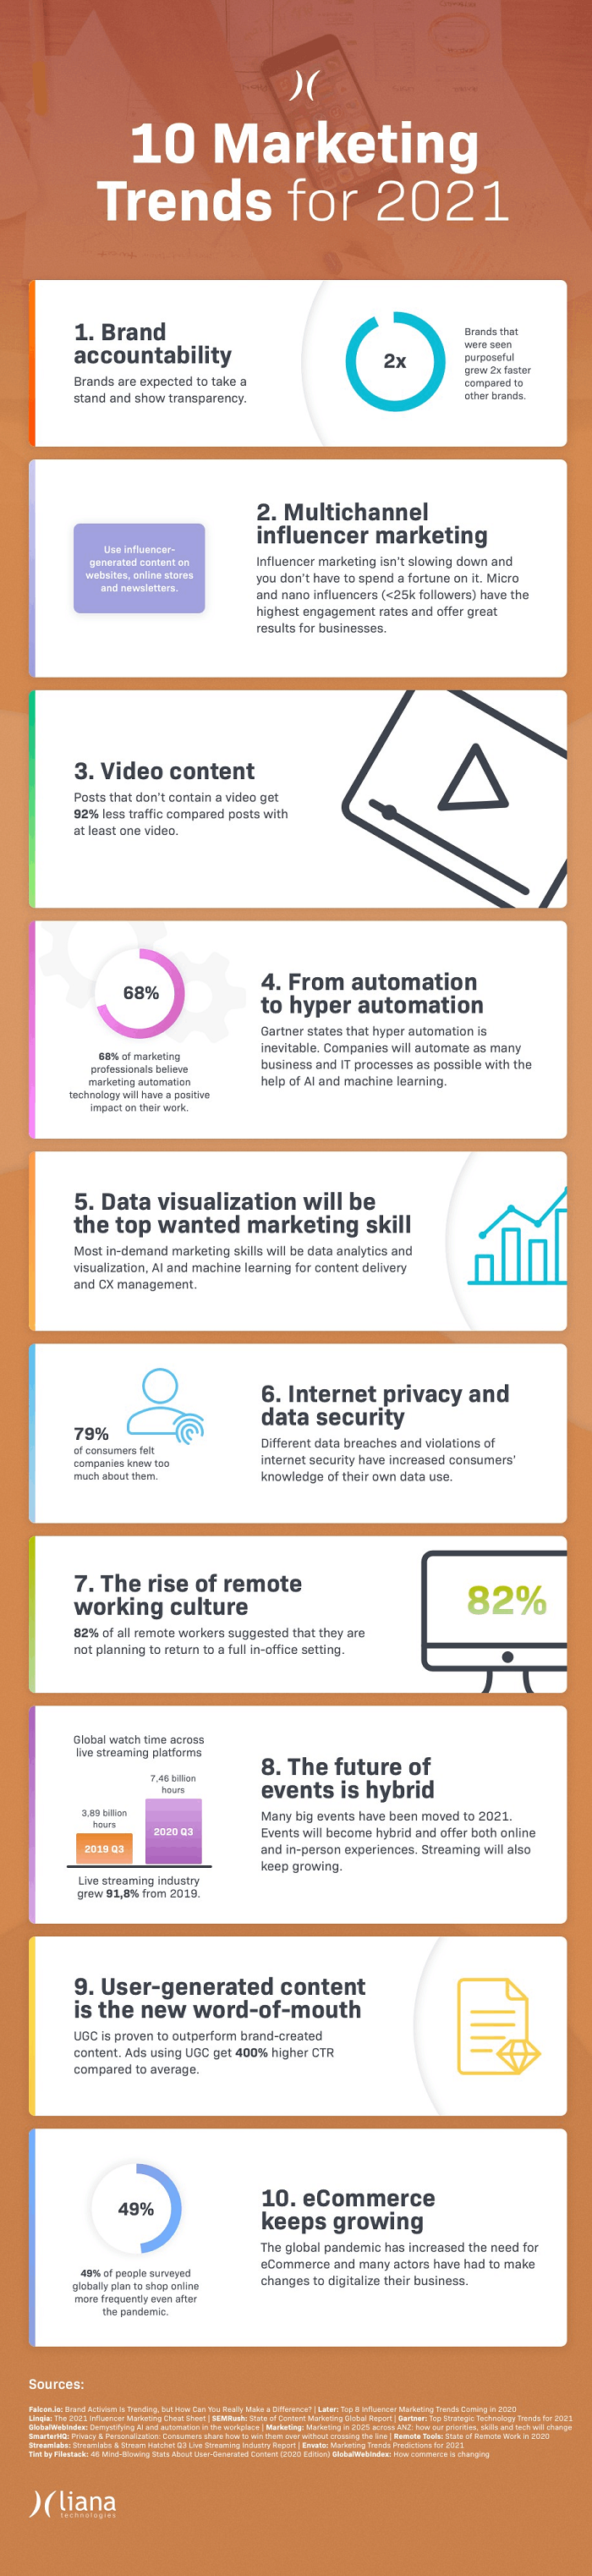 Infographic with marketing trends for 2021.